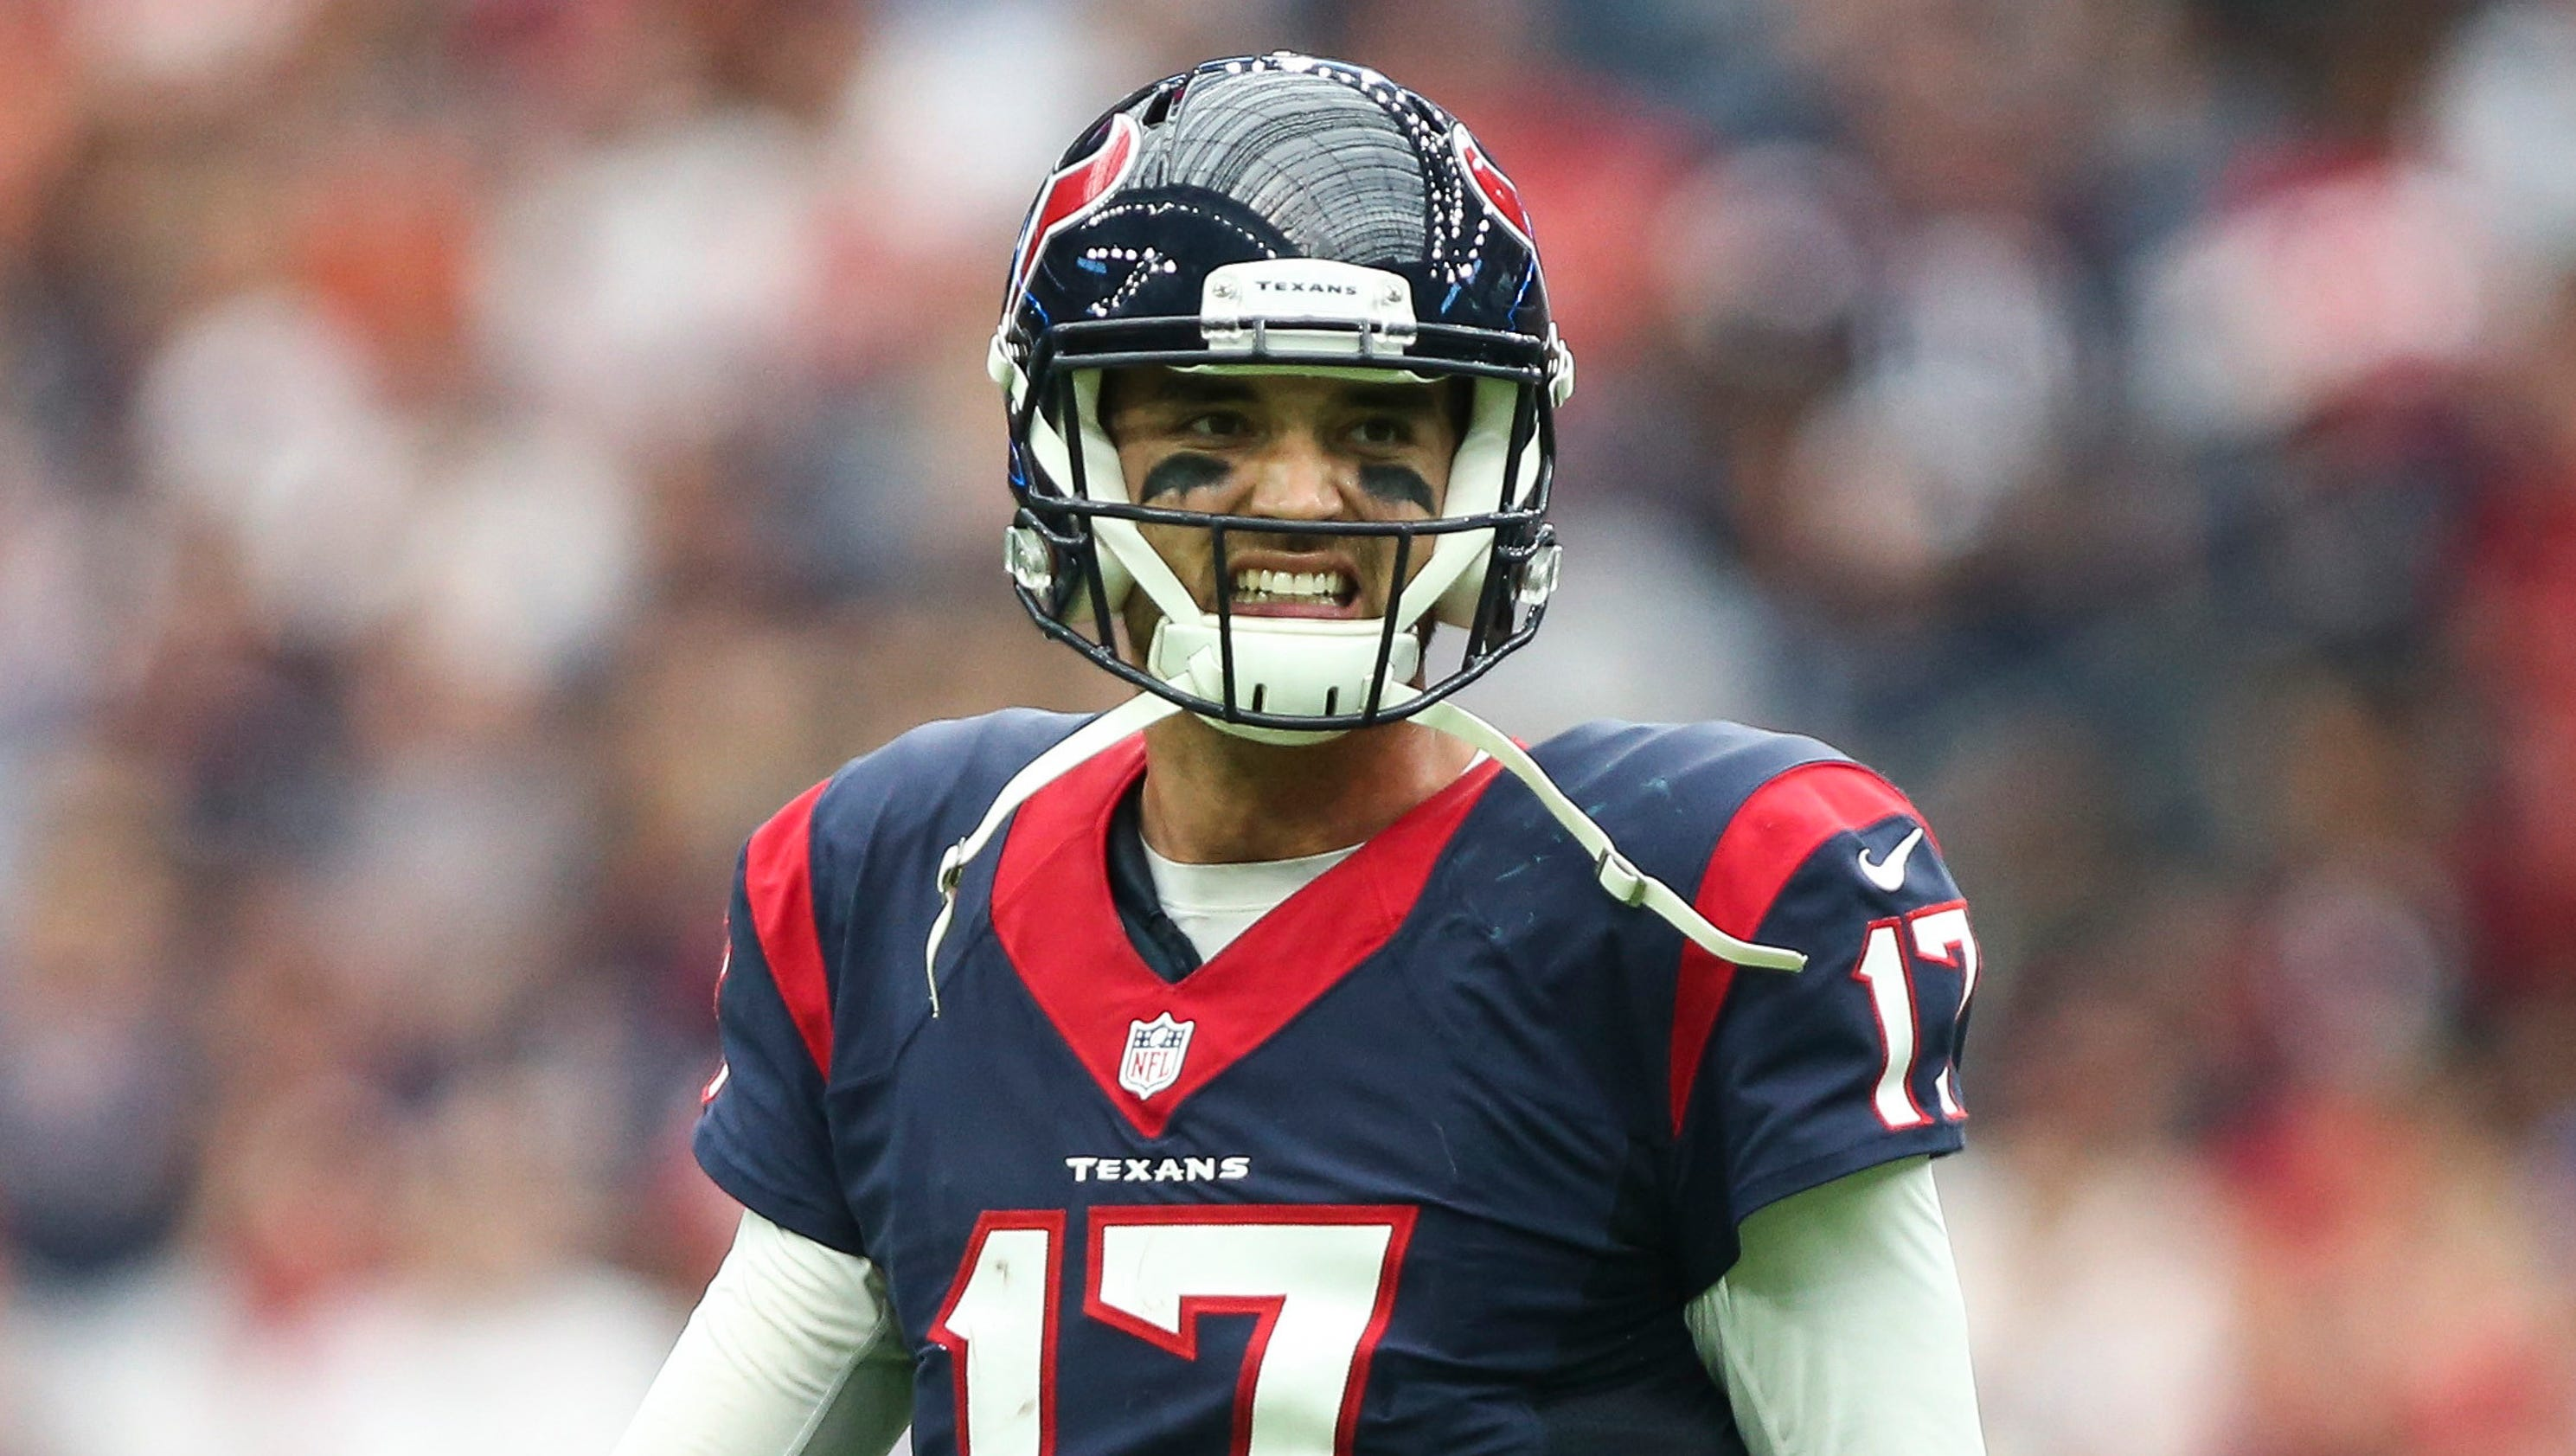 636124009350787536-usp-nfl-tennessee-titans-at-houston-texans-85702759